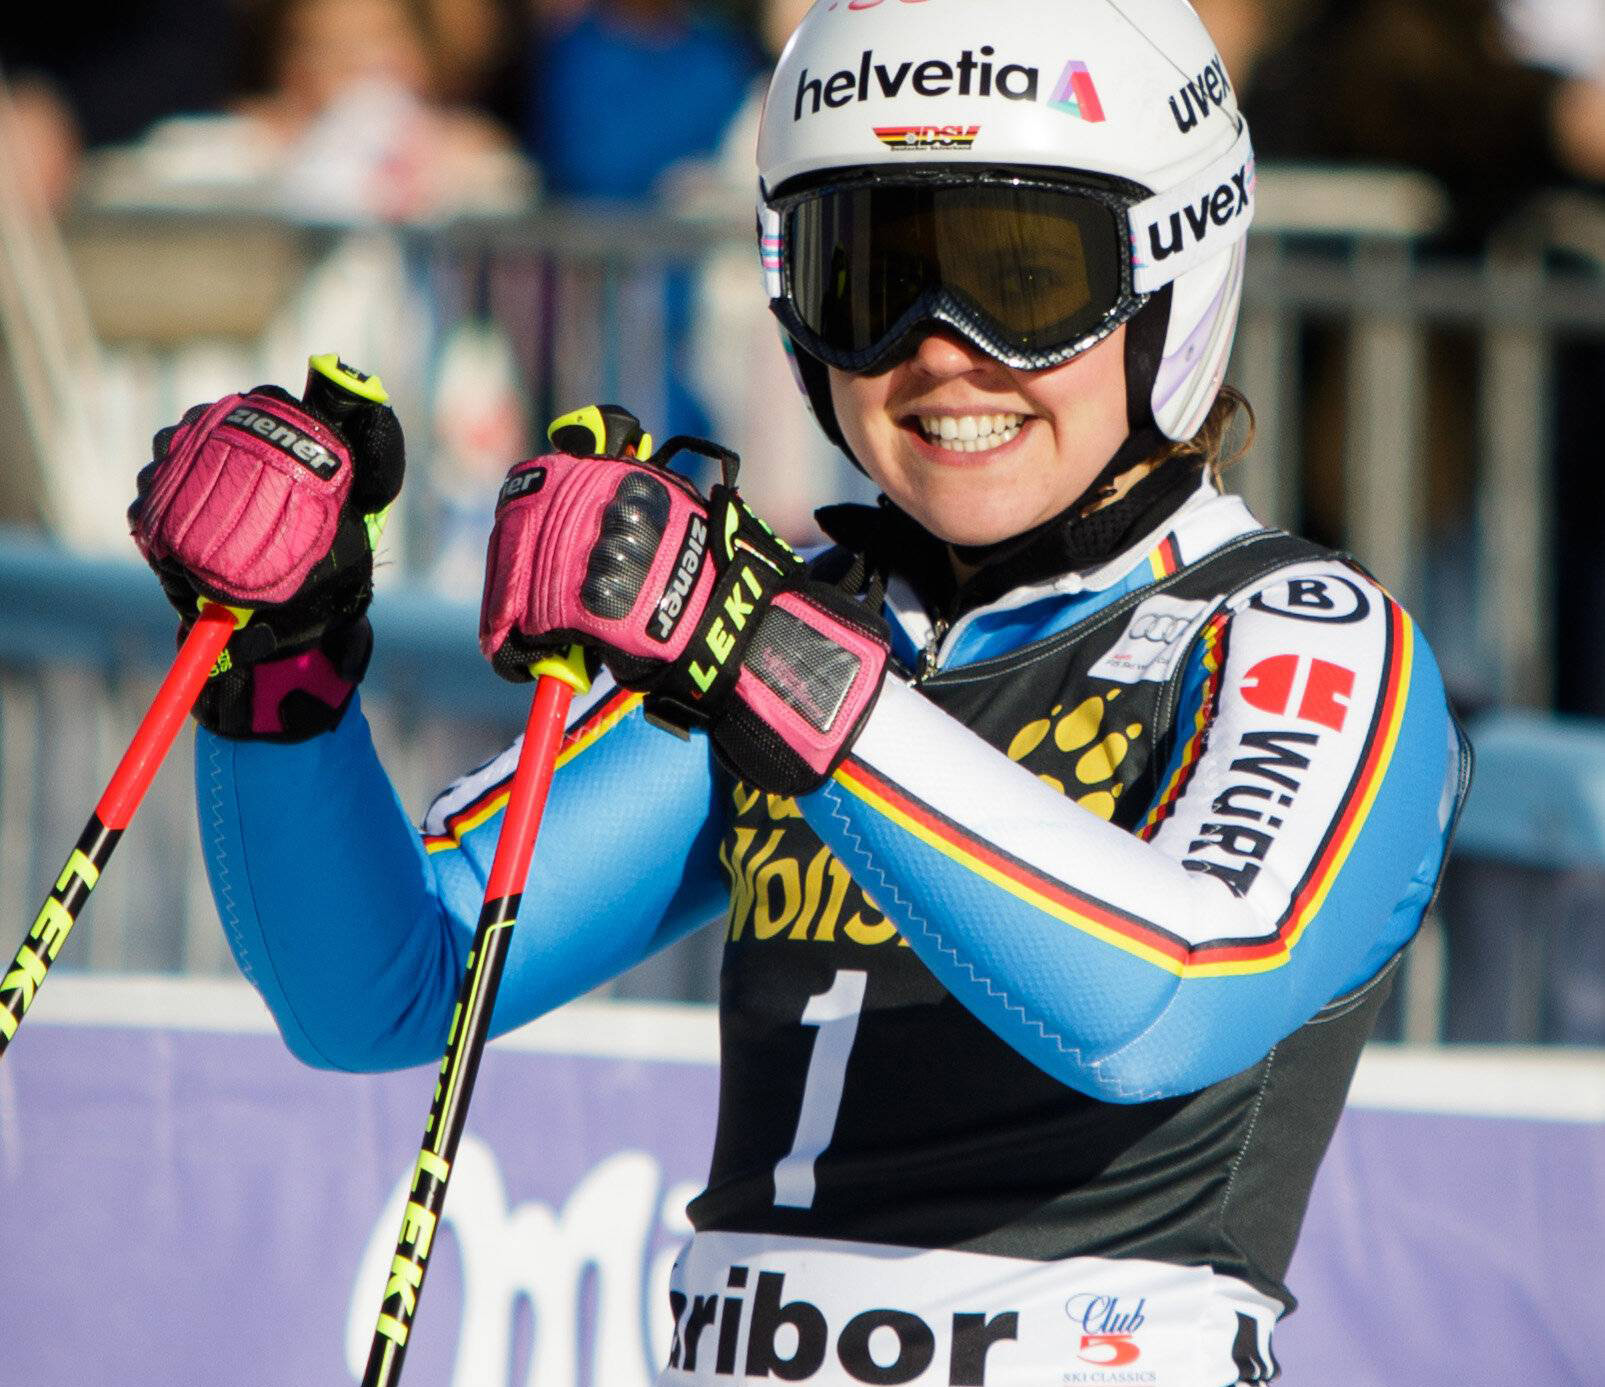 Maribor 30.01.2016, Pohorje, Maribor, SLO, FIS Weltcup Ski Alpin, Maribor, Riesenslalom, Damen, 2. Lauf, Im Bild Viktoria Rebensburg (GER) // Reacts After Her 2nd Run Of Ladie S Giant Slalom Of The Maribor FIS Ski Alpine World Cup At The Pohorje In Maribor, Slovenia On 2016/01/30. PUBLICATIONxNOTxINxAUT EP_Stida  Maribor 30 01 2016 Pohorje Maribor SLO FIS World Cup Ski Alpine Maribor Giant Slalom Women 2 Run In Picture Viktoria Vine Castle Ger Reacts After Her 2nd Run Of Ladie S Giant Slalom Of The Maribor FIS Ski Alpine World Cup AT The Pohorje In Maribor Slovenia ON 2016 01 30 PUBLICATIONxNOTxINxAUT EP_stida